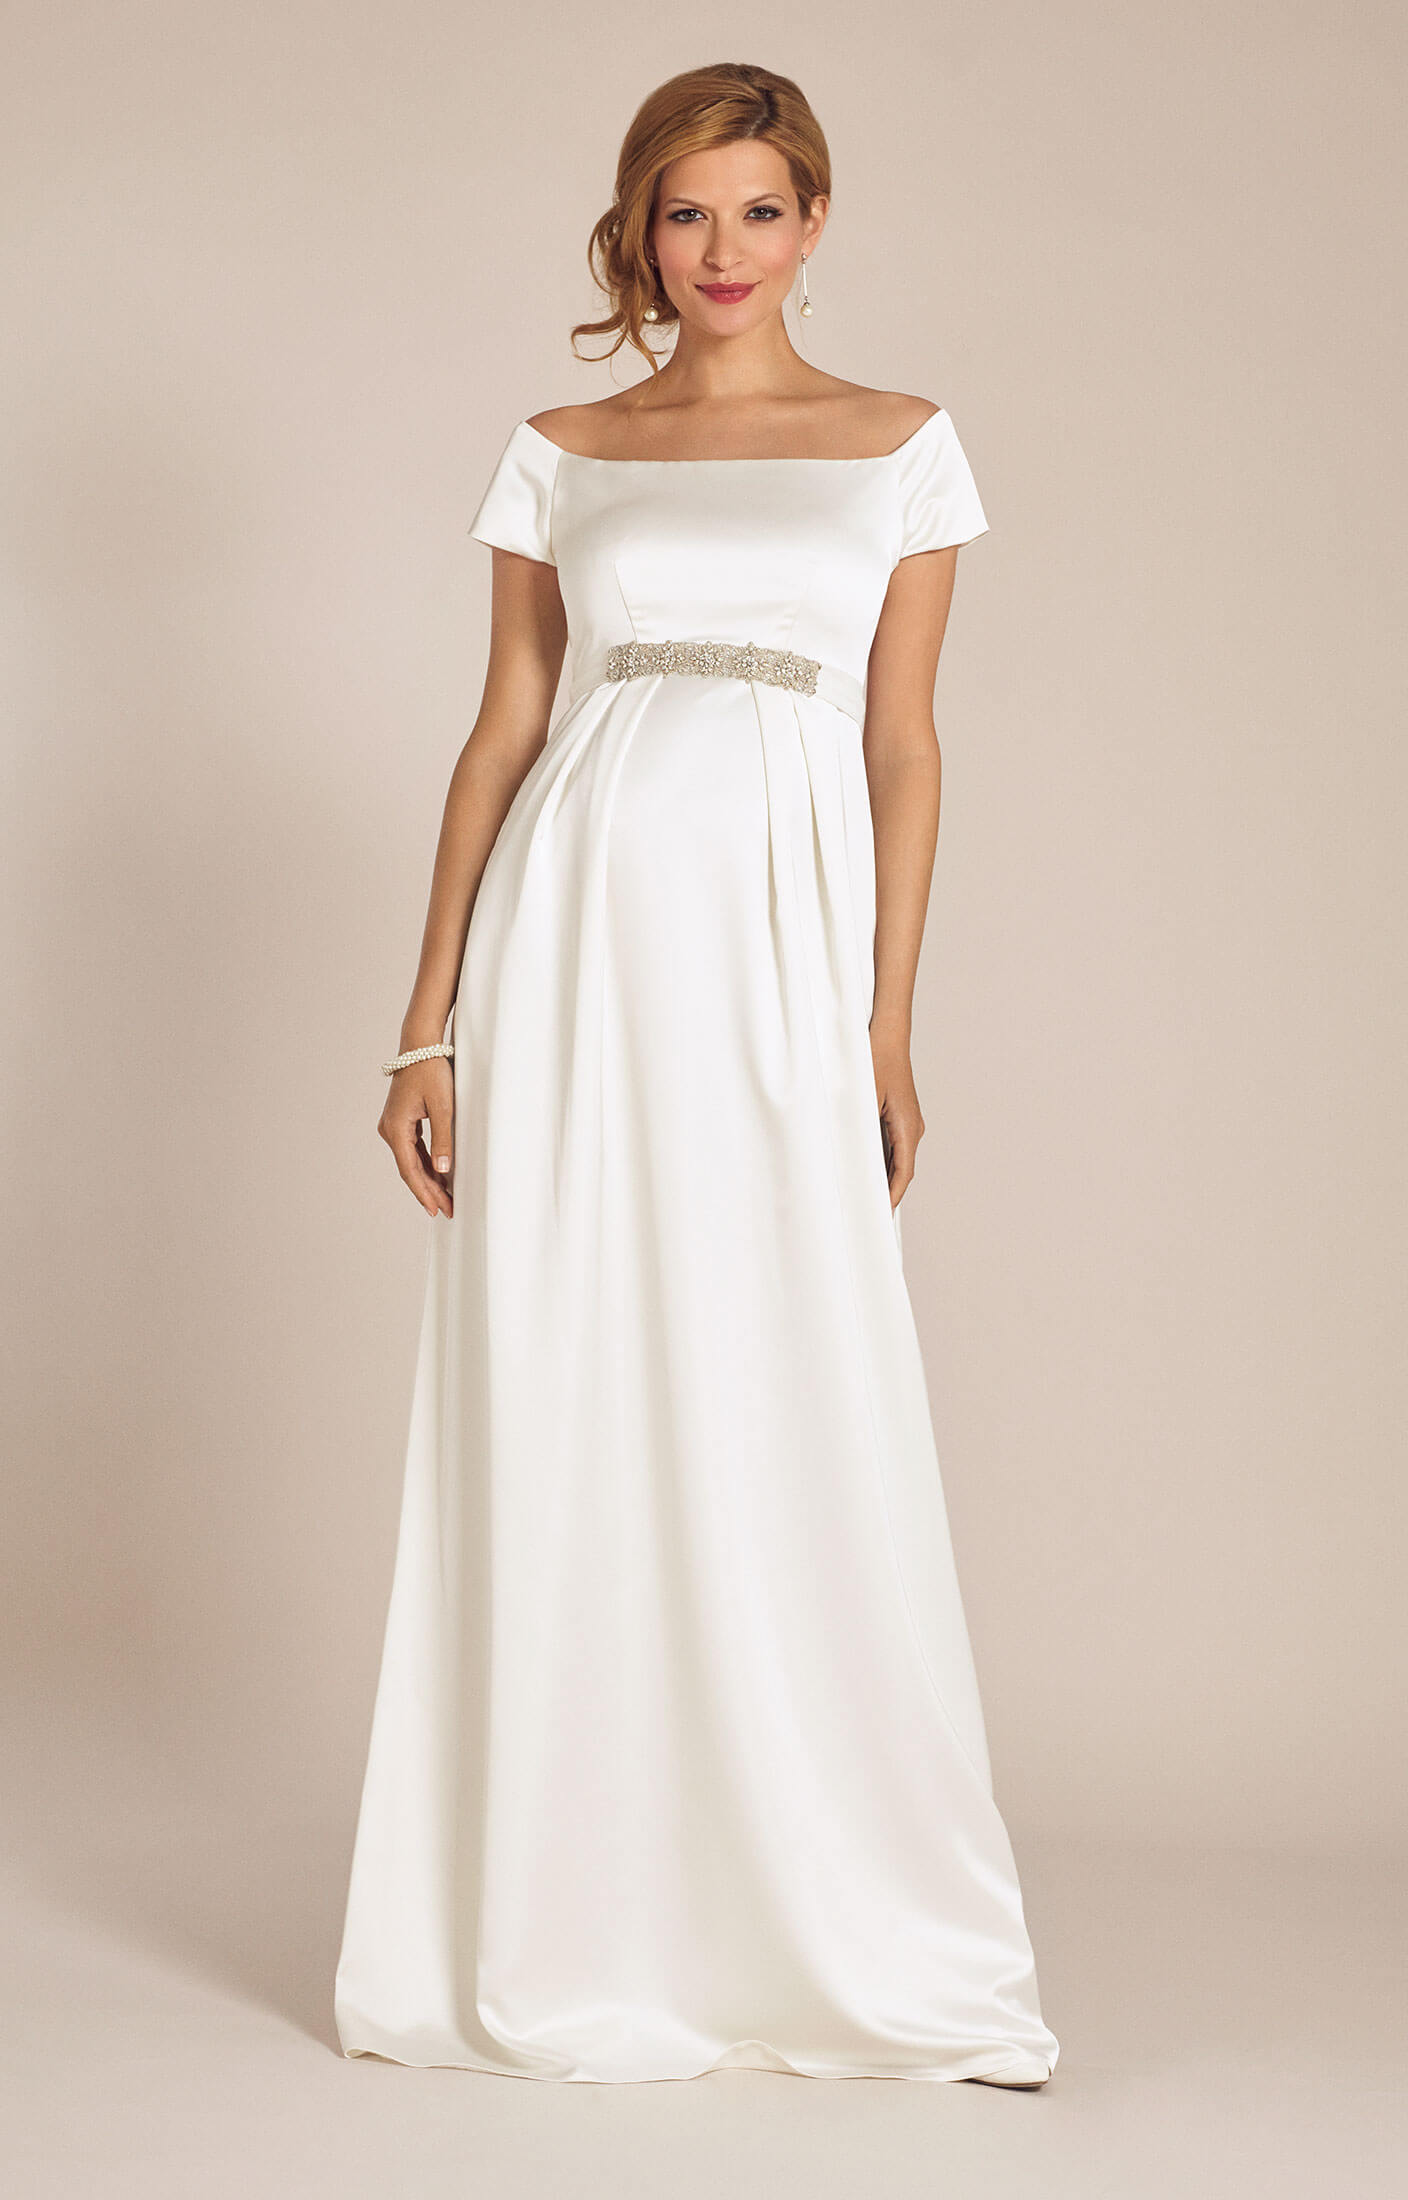 Aria maternity wedding gown ivory maternity wedding for Wedding dresses for womens